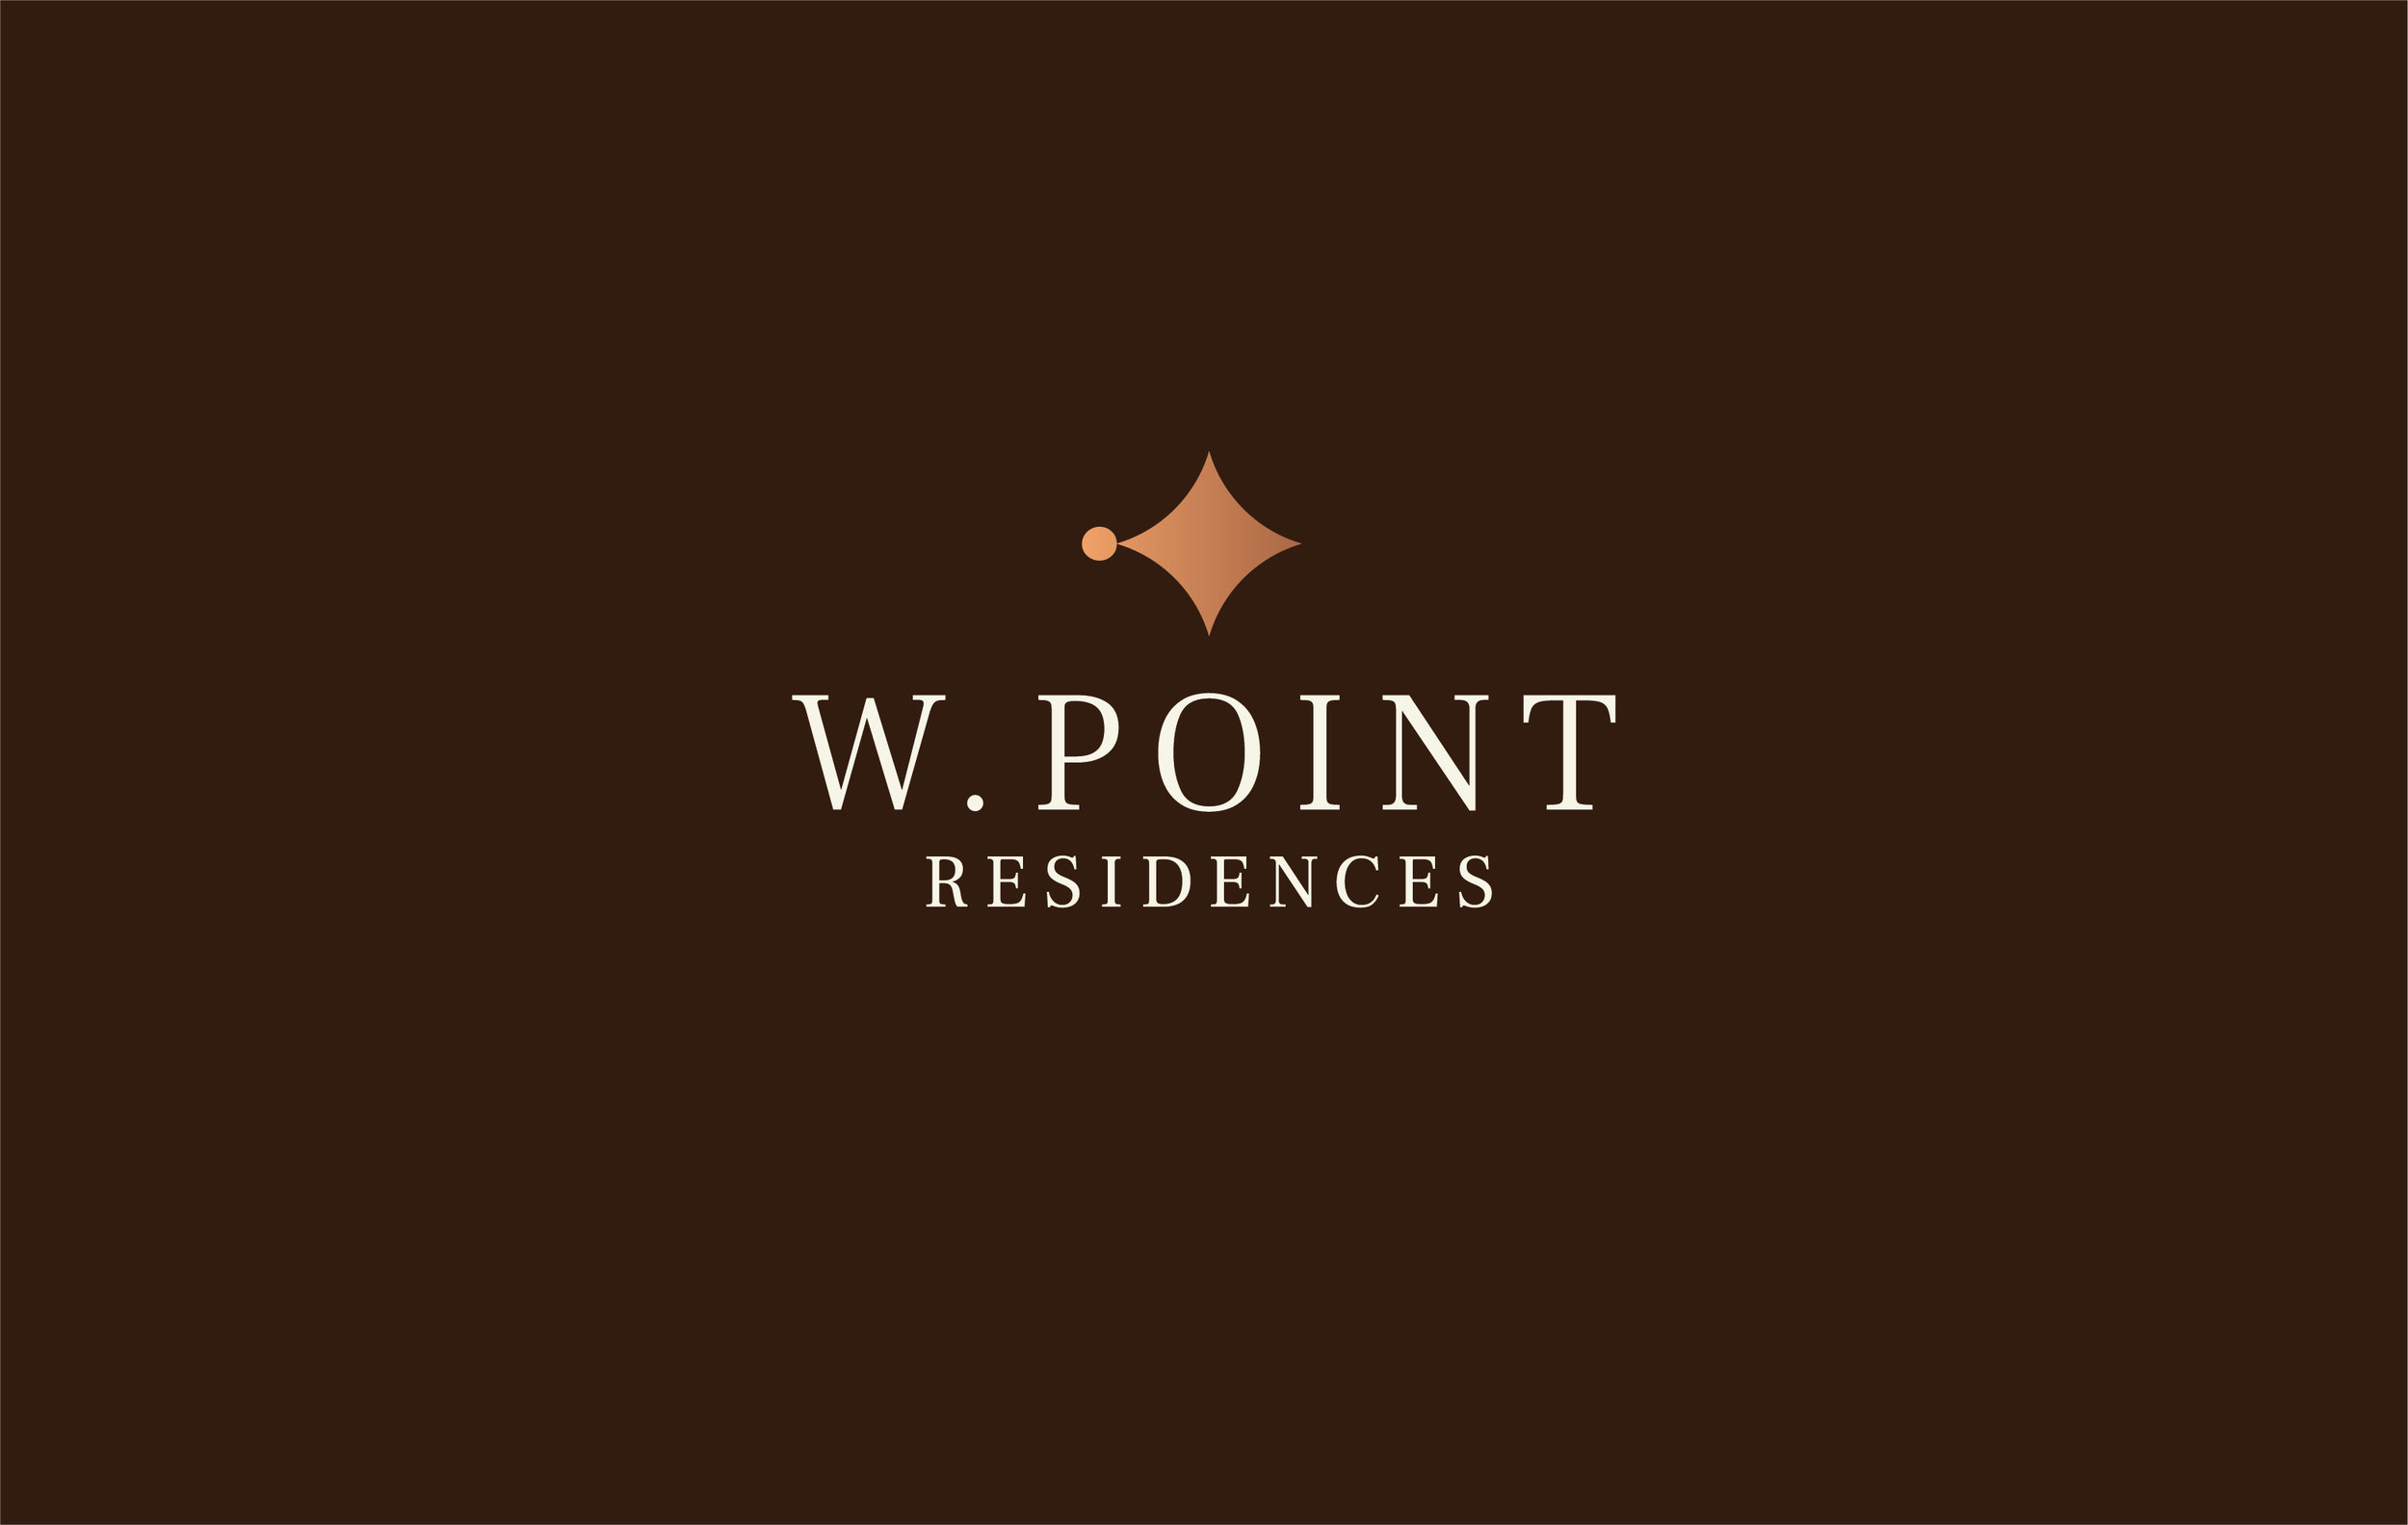 W. Point Residences is a high-end residential housing development in Seattle's Magnolia neighborhood. This mark uses a stylized compass to convey a classic elegance.